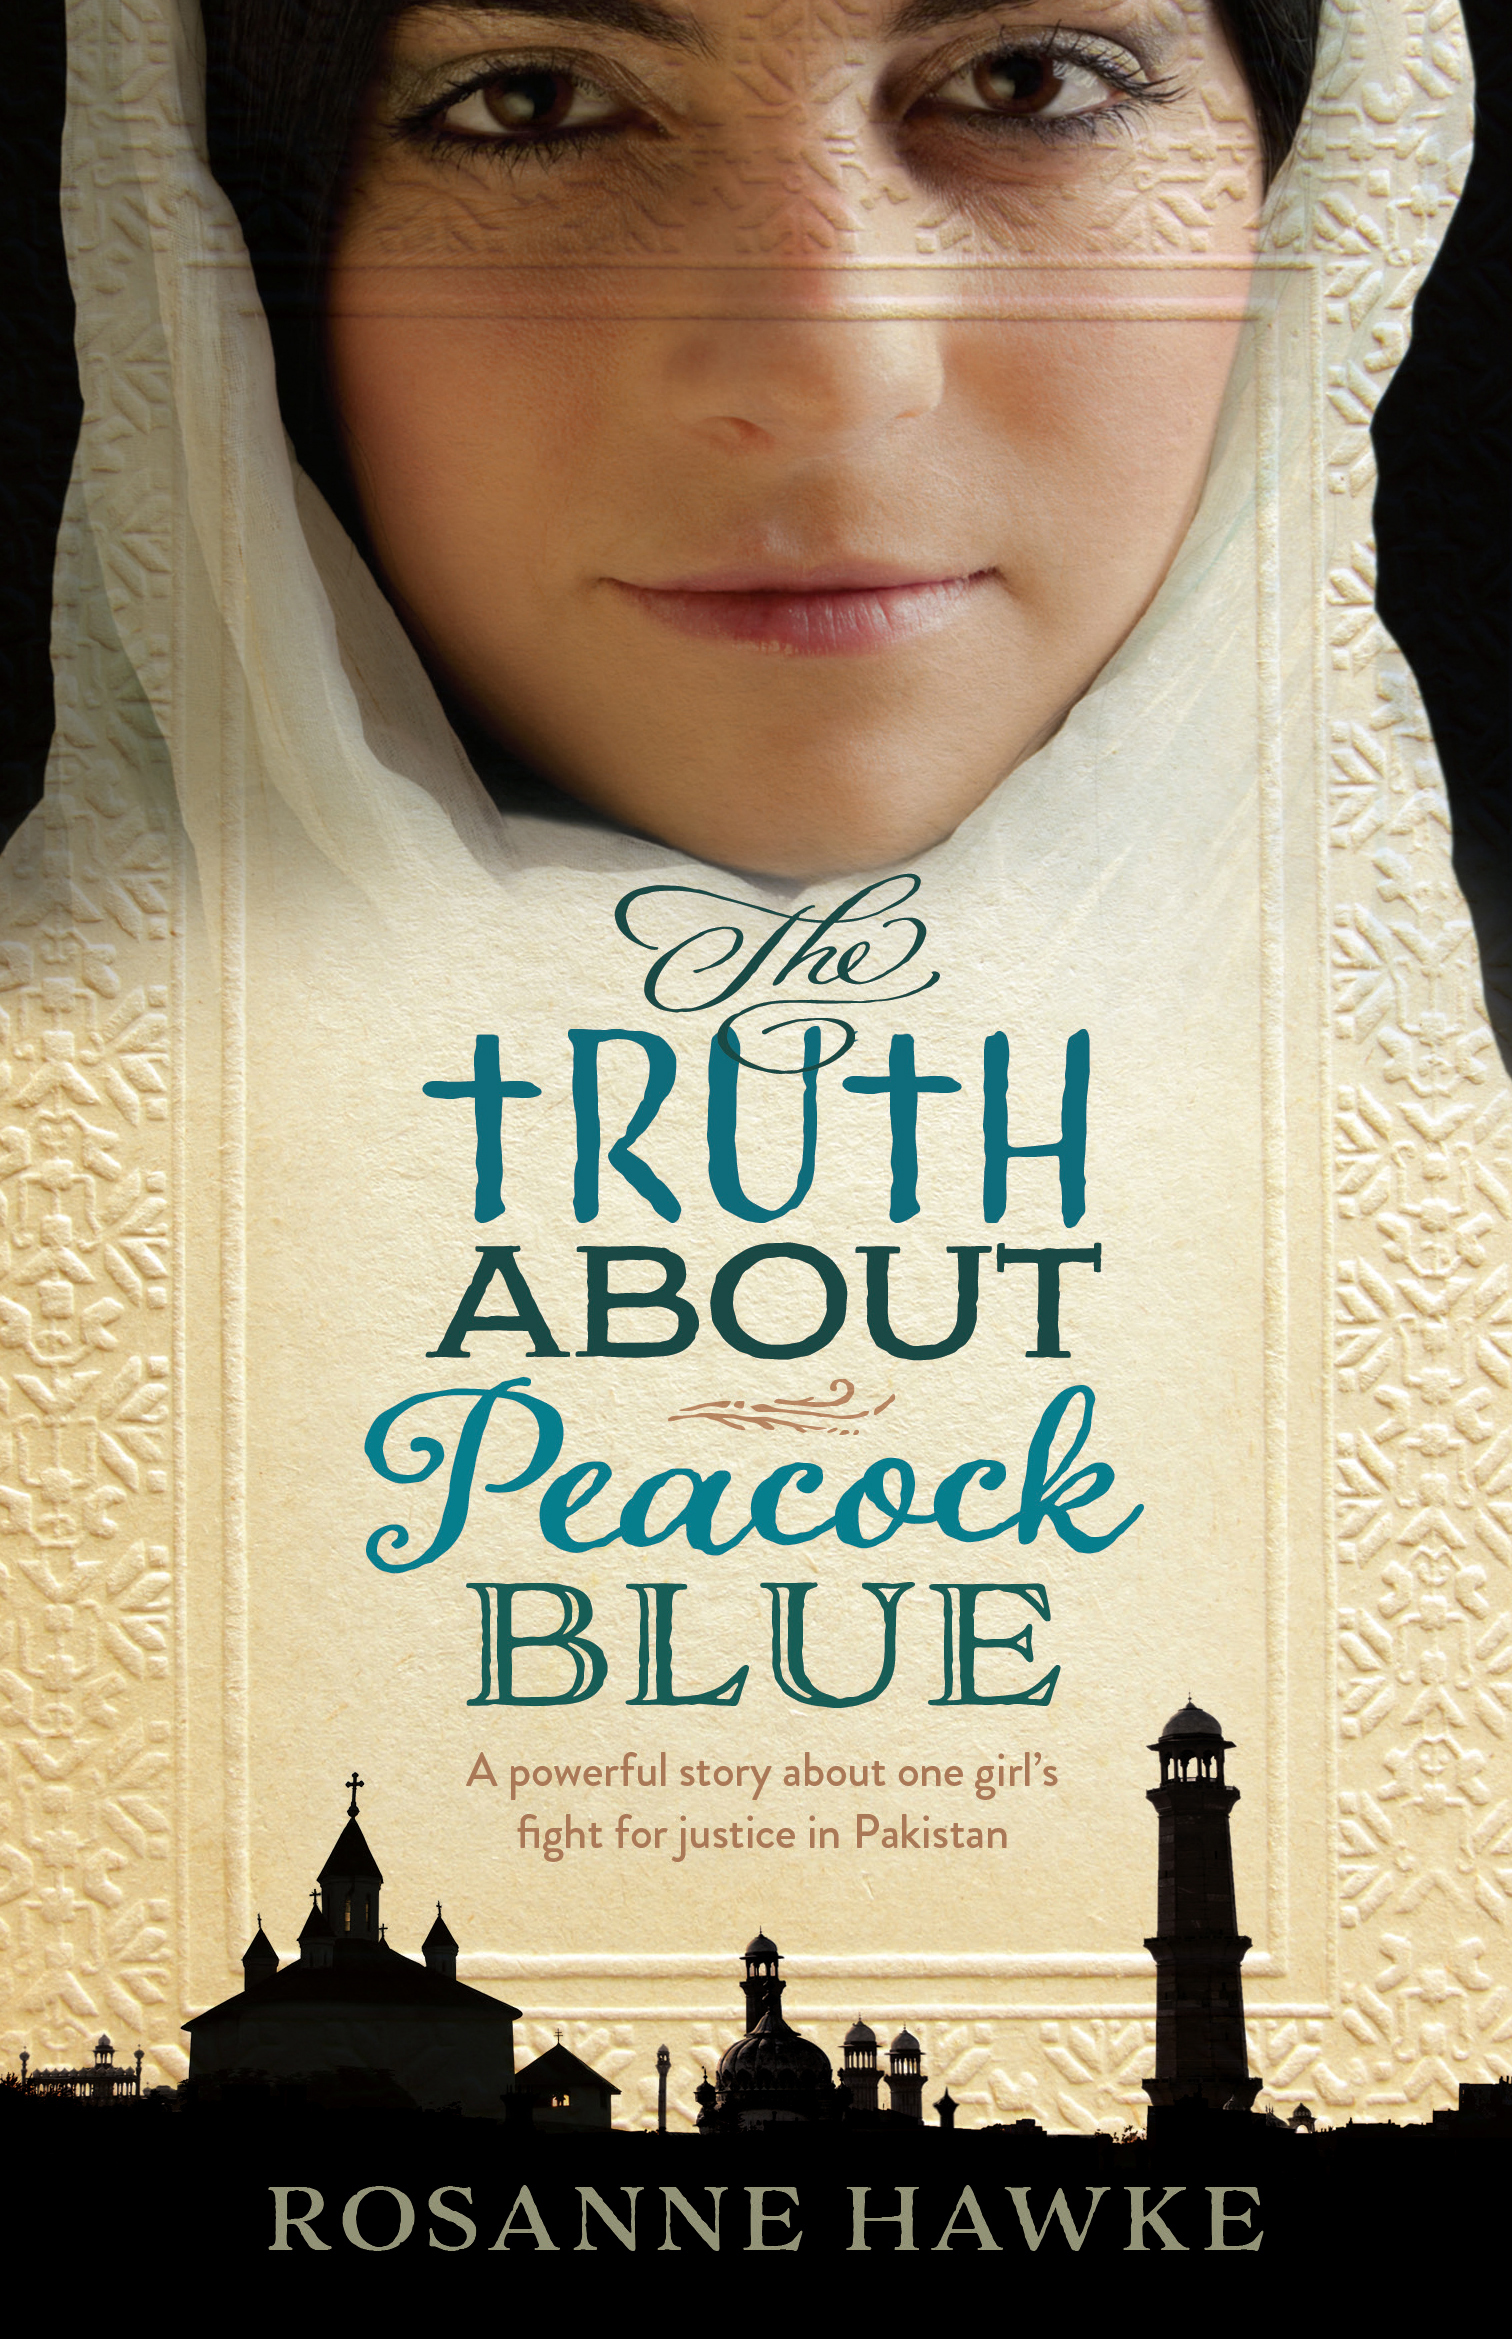 The Truth About Peacock Blue - Rosanne Hawke - 9781743319949